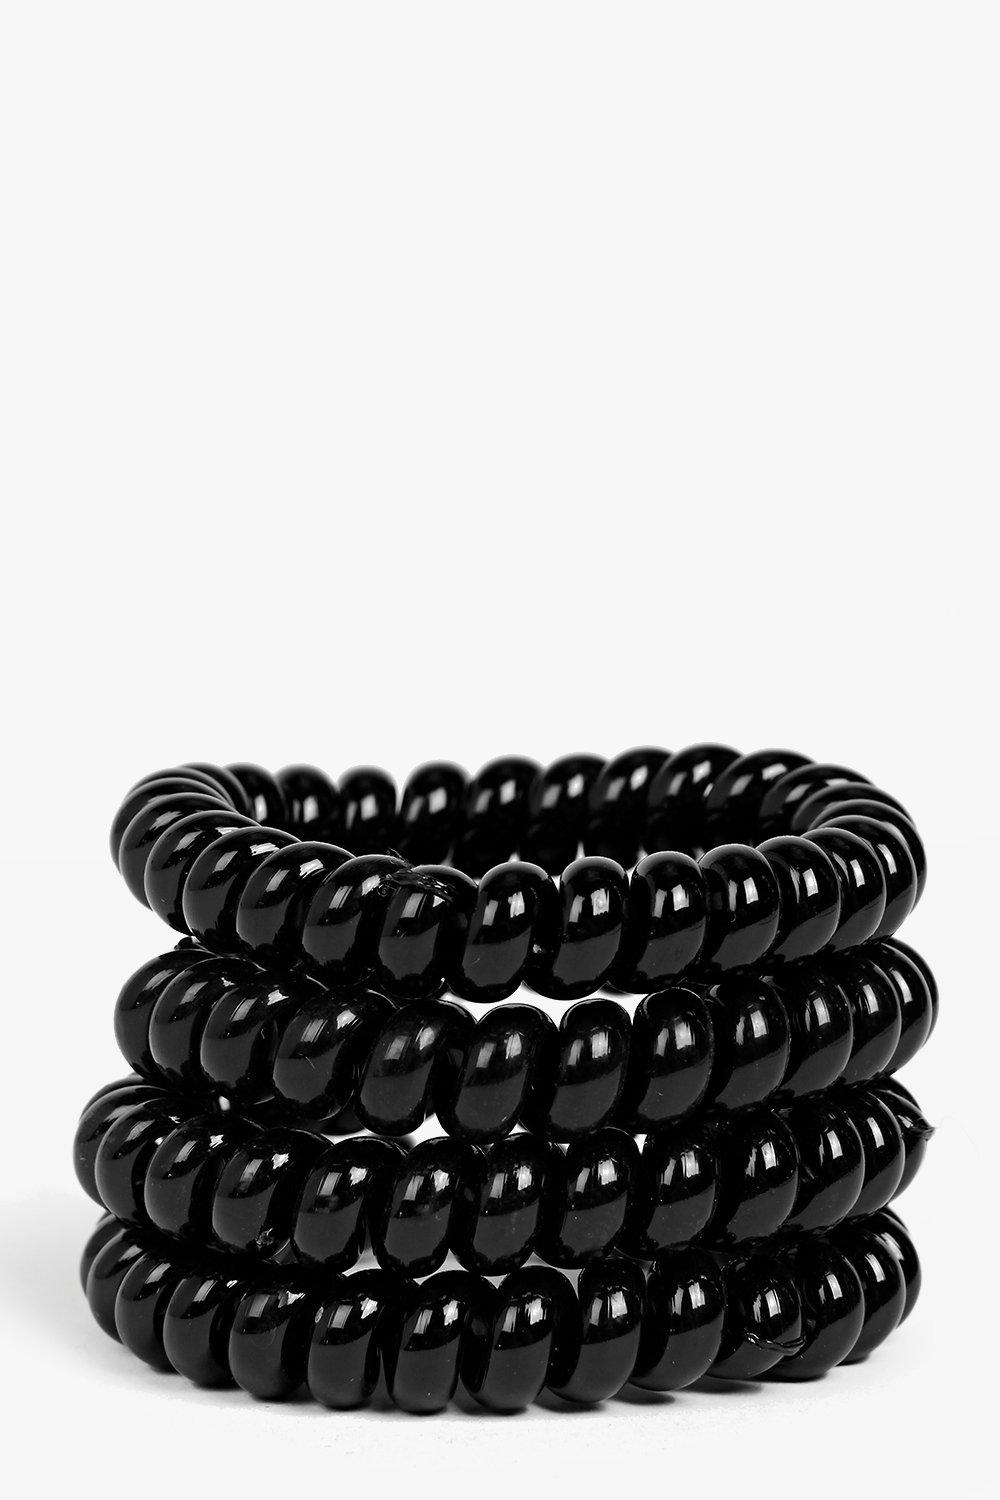 Tia Jelly Coil Hair Tie 4 Pack